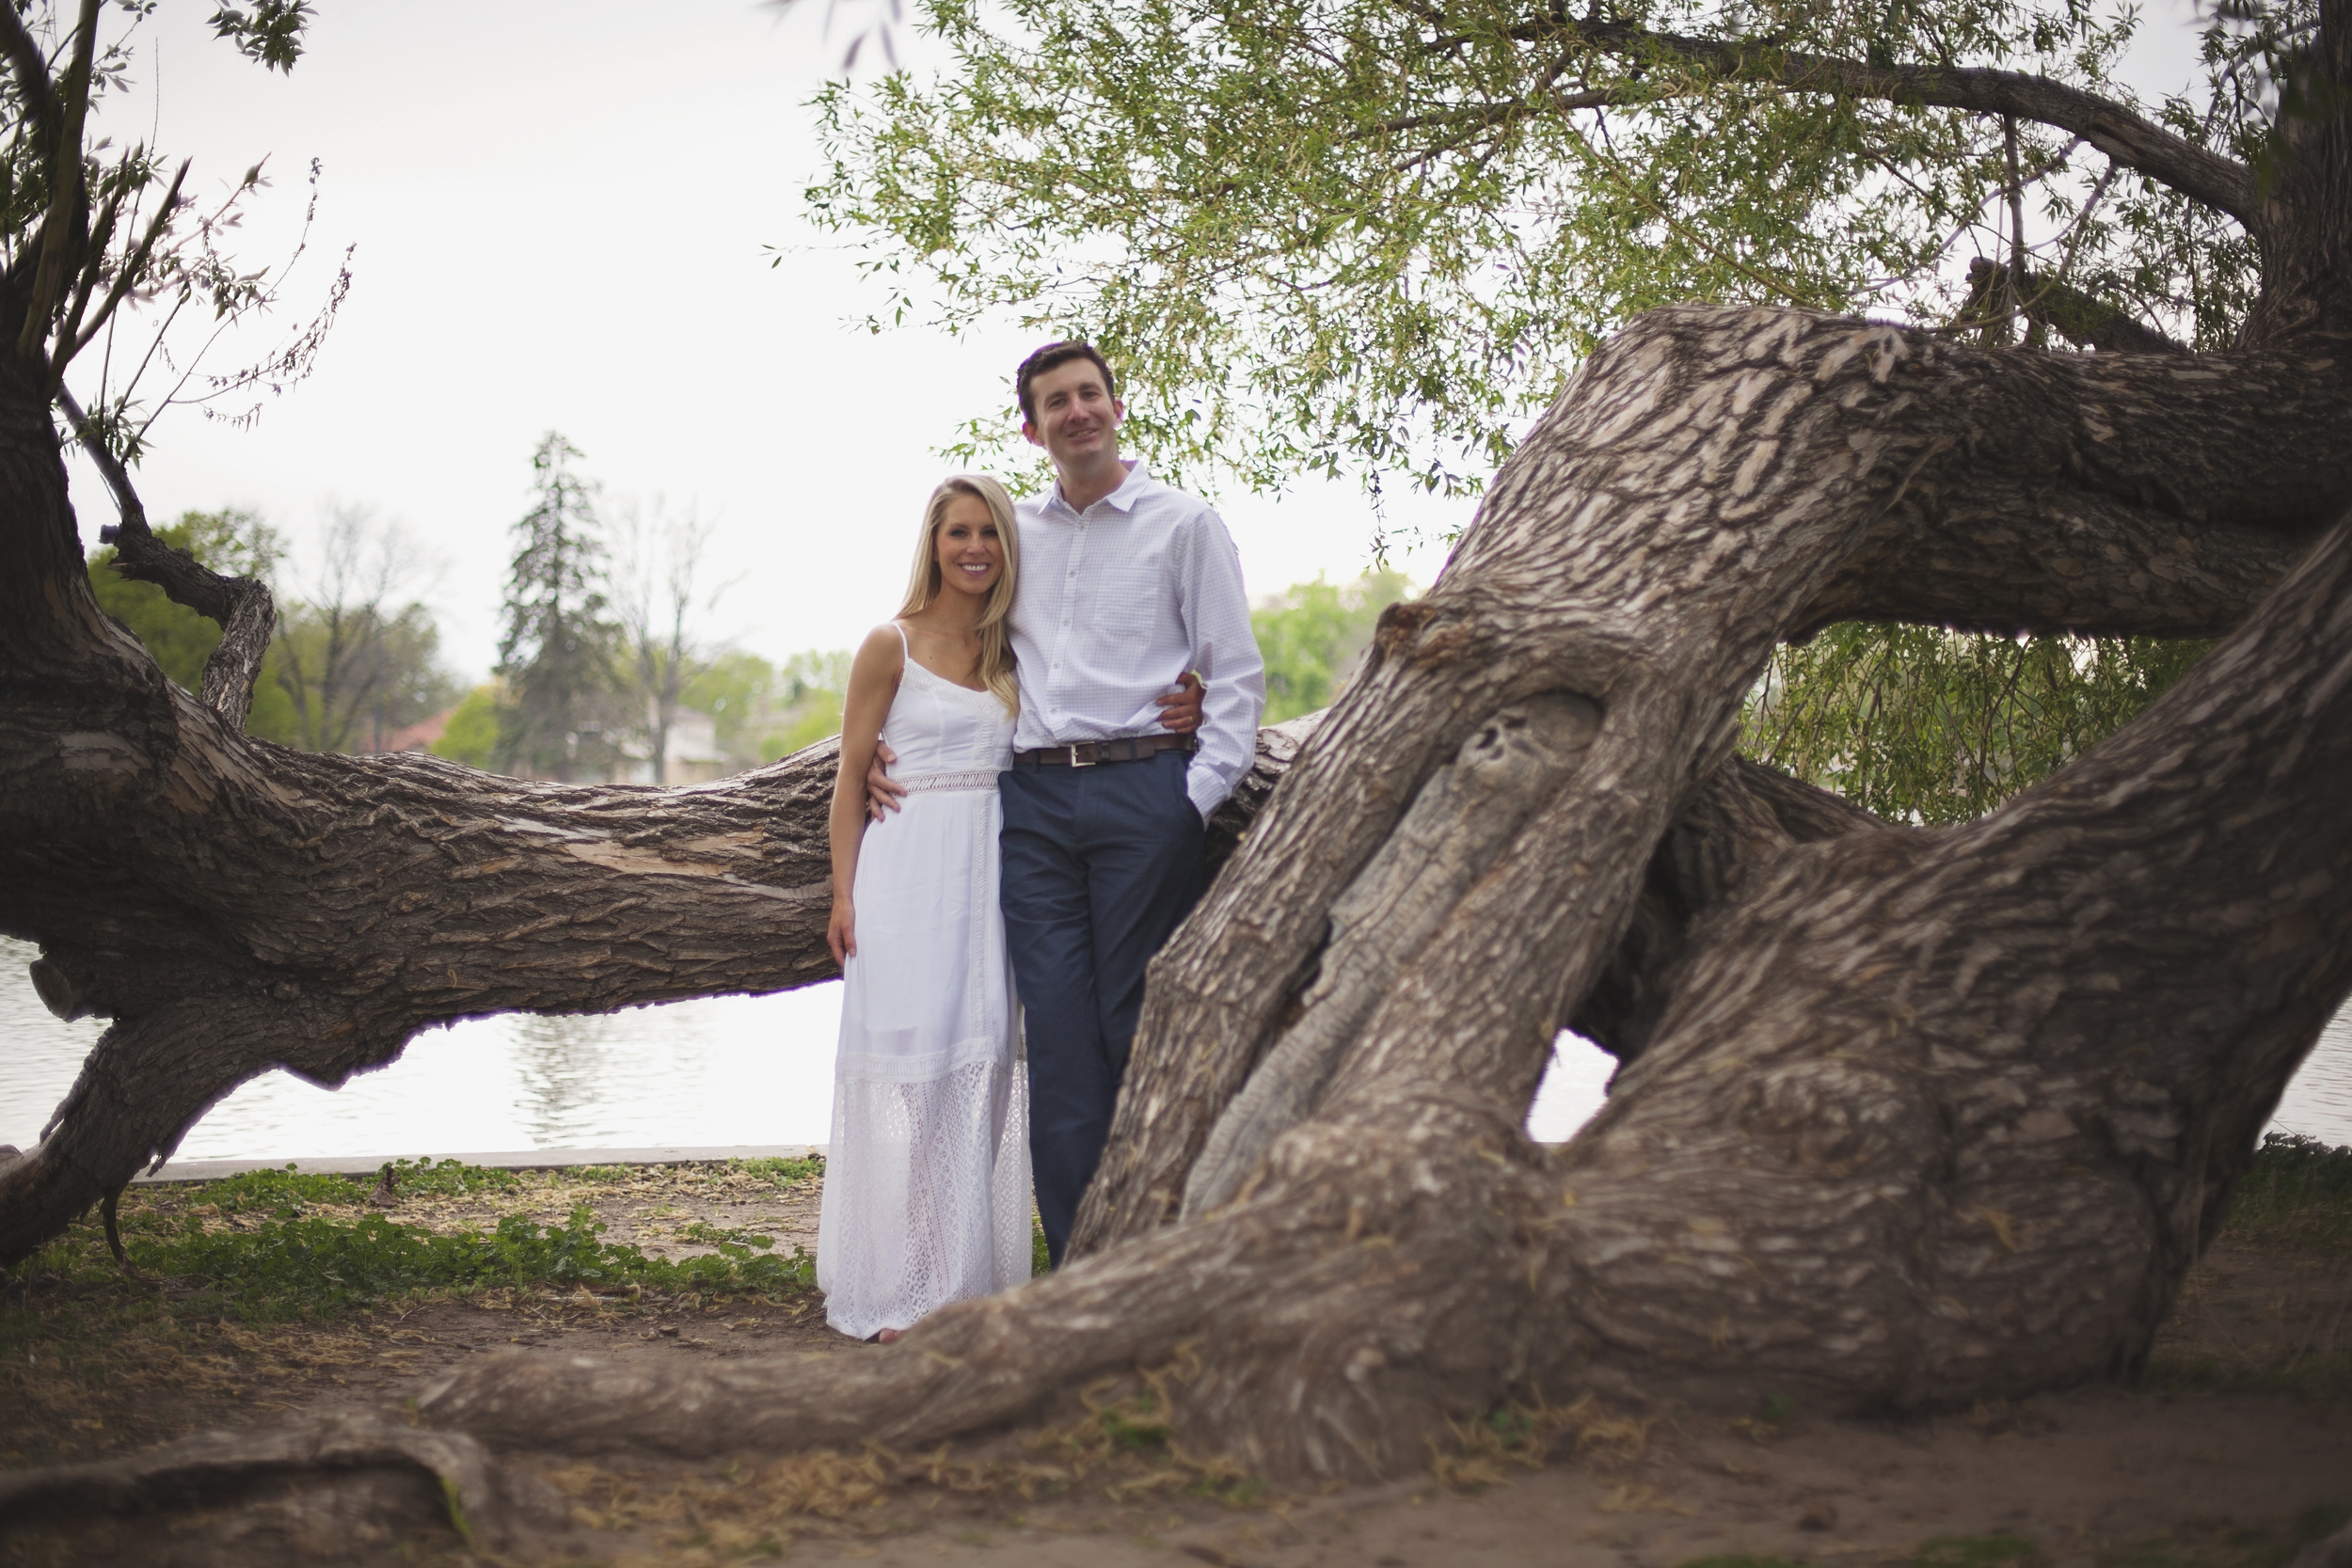 Couple holding each other near tree trunk during engagement photo session